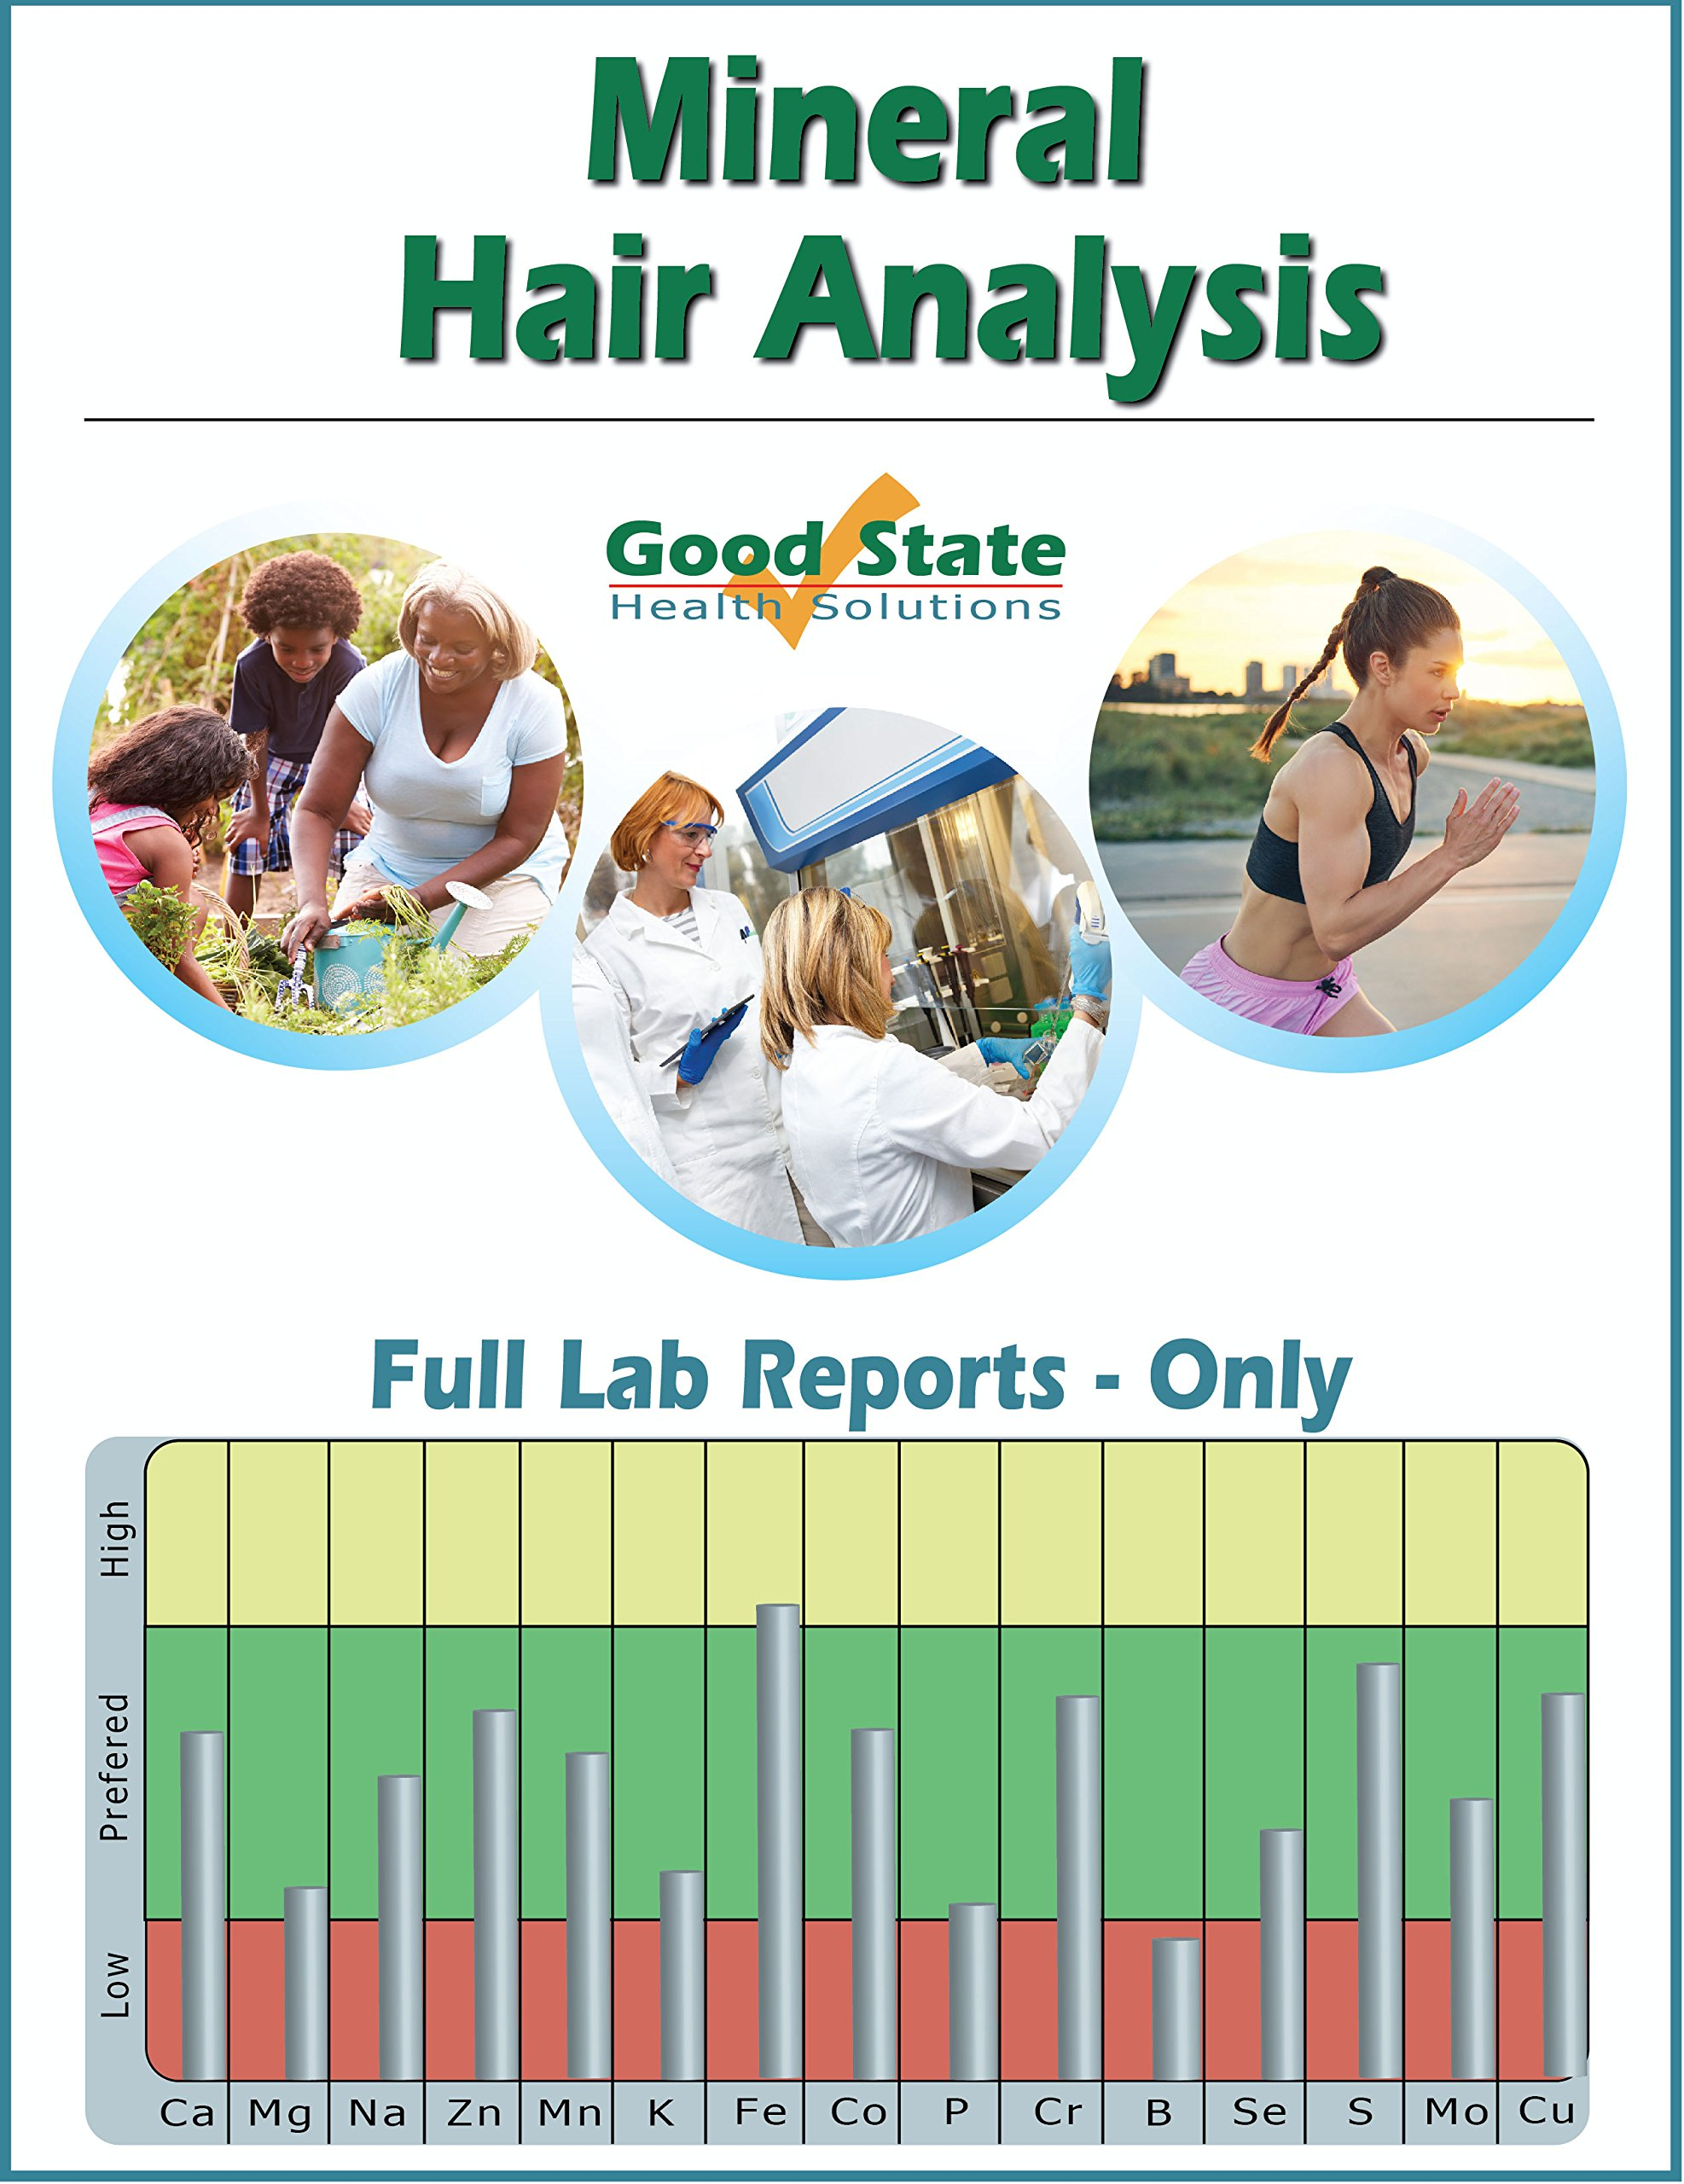 Mineral Hair Analysis - Reports Only - Includes Test Sample Collection Kit and Pre-Paid Sample Return Label